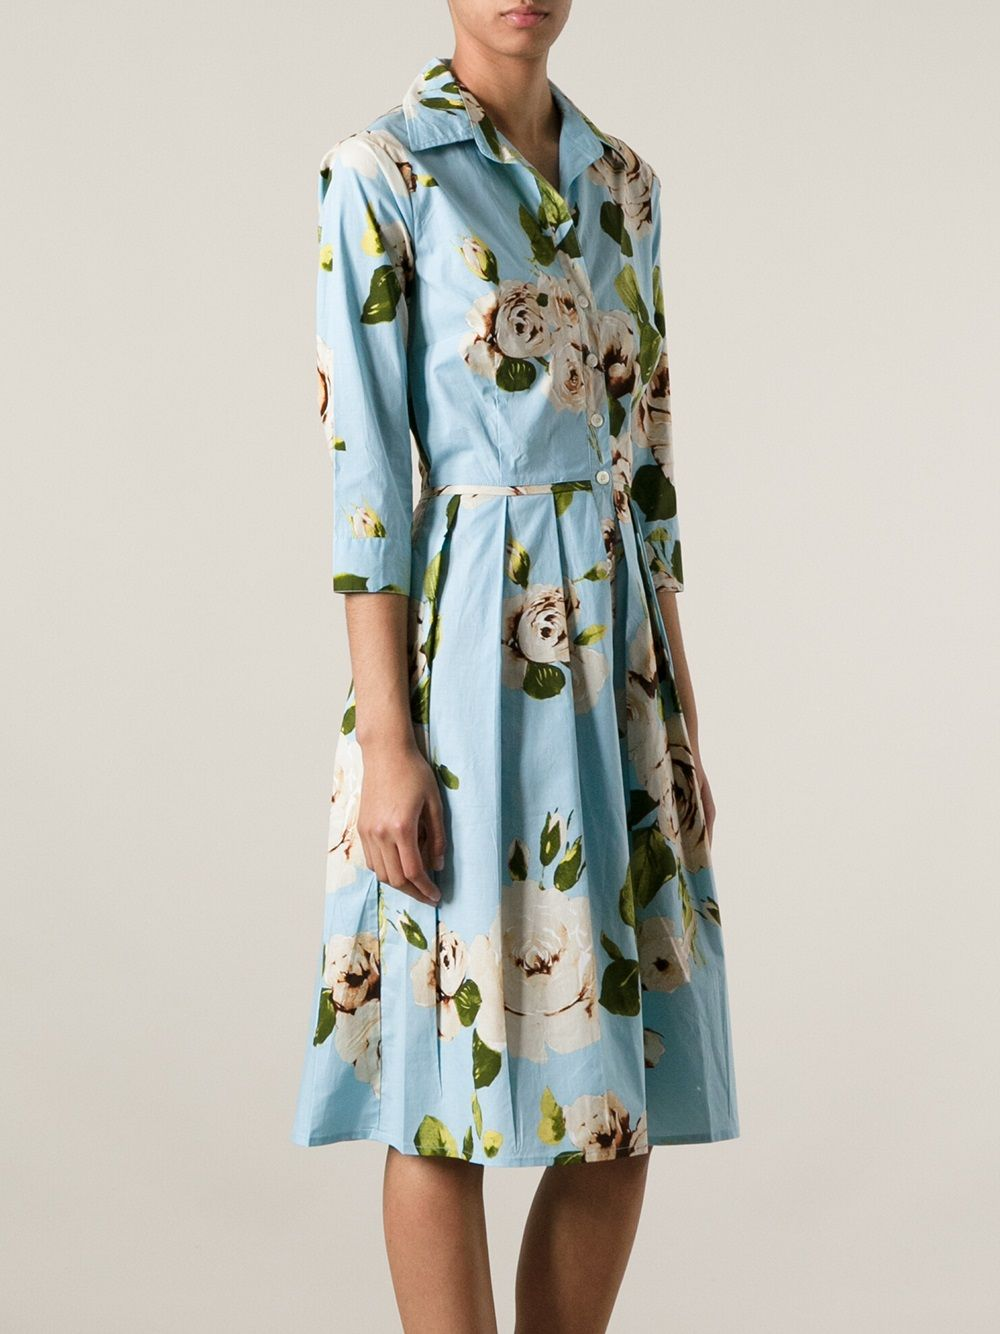 2295cf368873 Samantha Sung 'audrey' Floral Dress - Changing Room - Farfetch.com ...